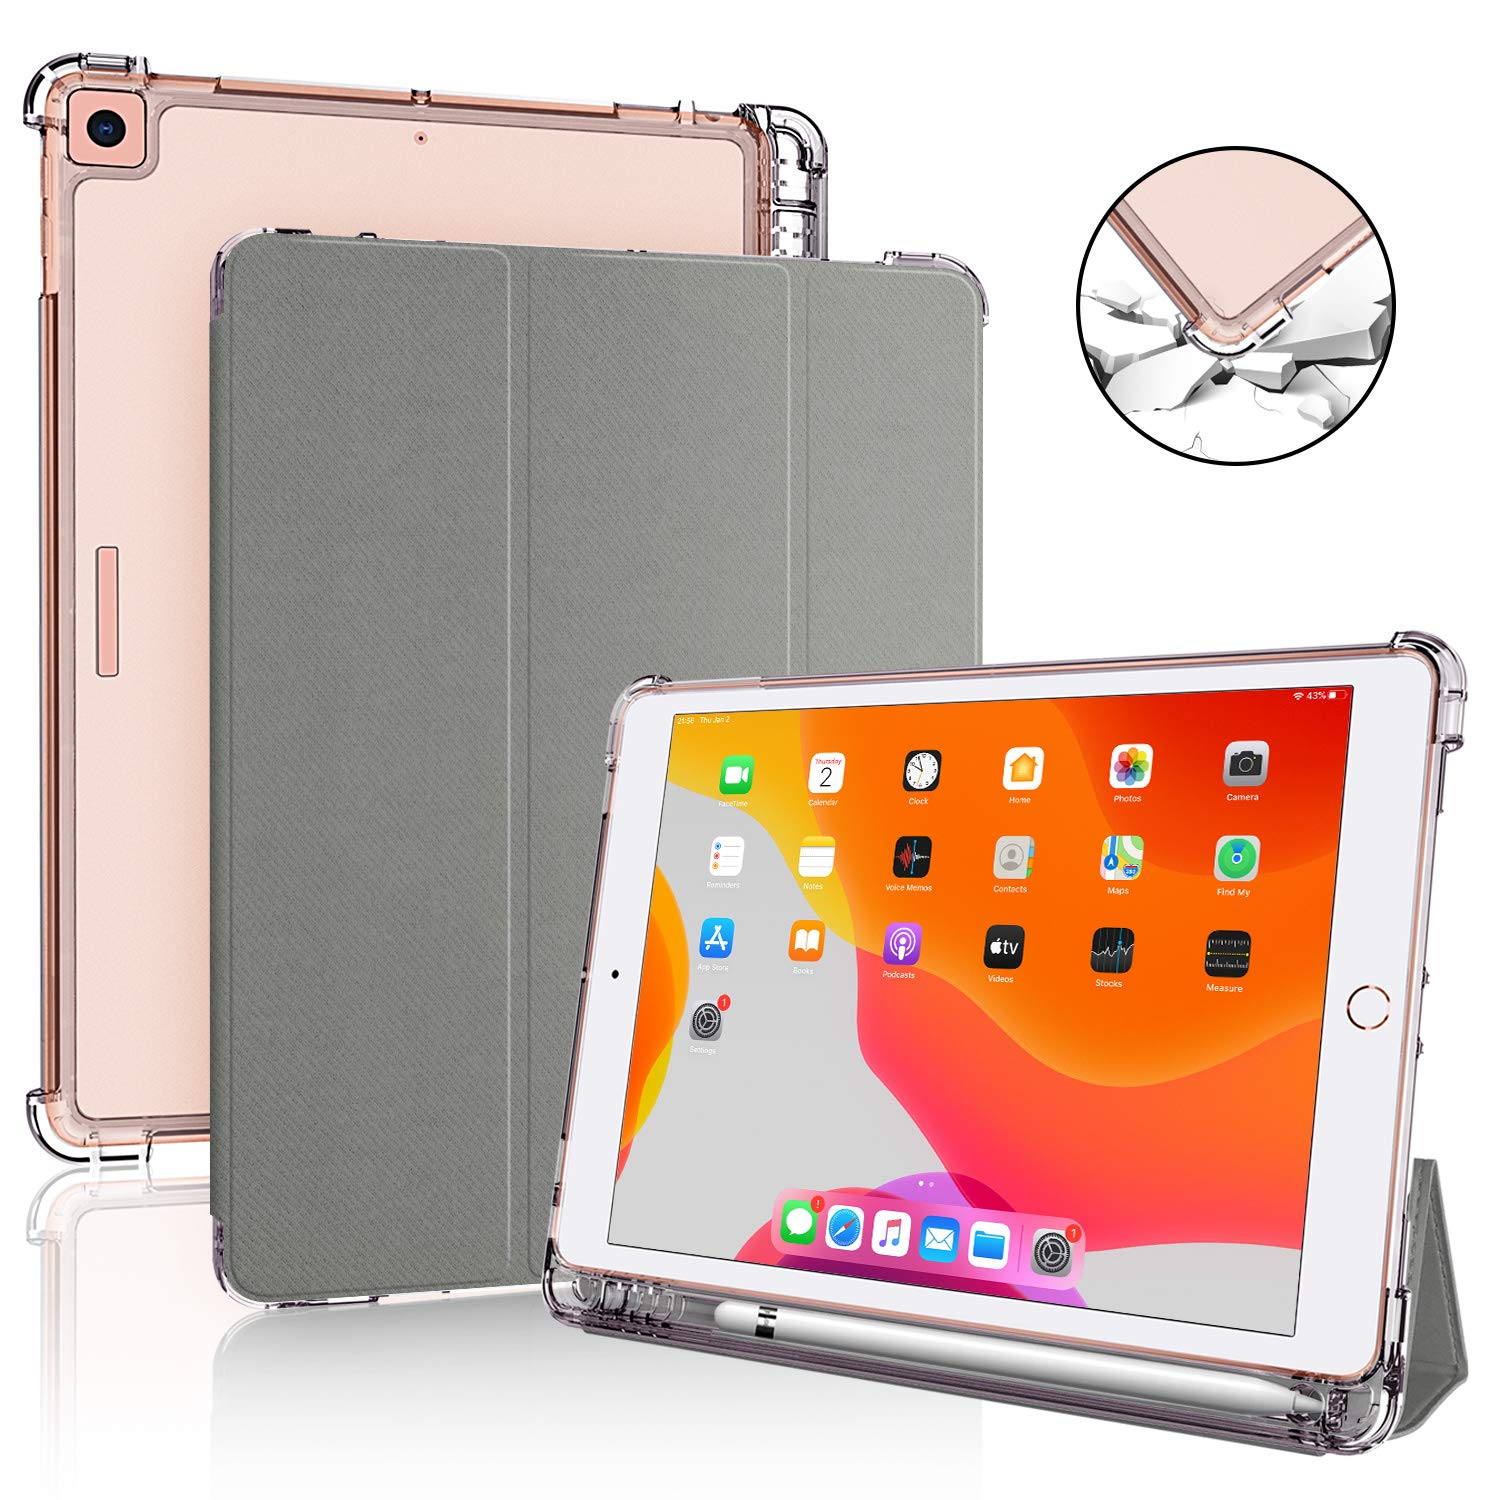 DDup iPad 7th Generation Case - New iPad 10.2 Case 2020 with Pencil Holder, Dual Shockproof Smart Leather Cover Soft Translucent Matte Back Slim Shell Auto Sleep/Wake (Grey case for iPad 10.2)